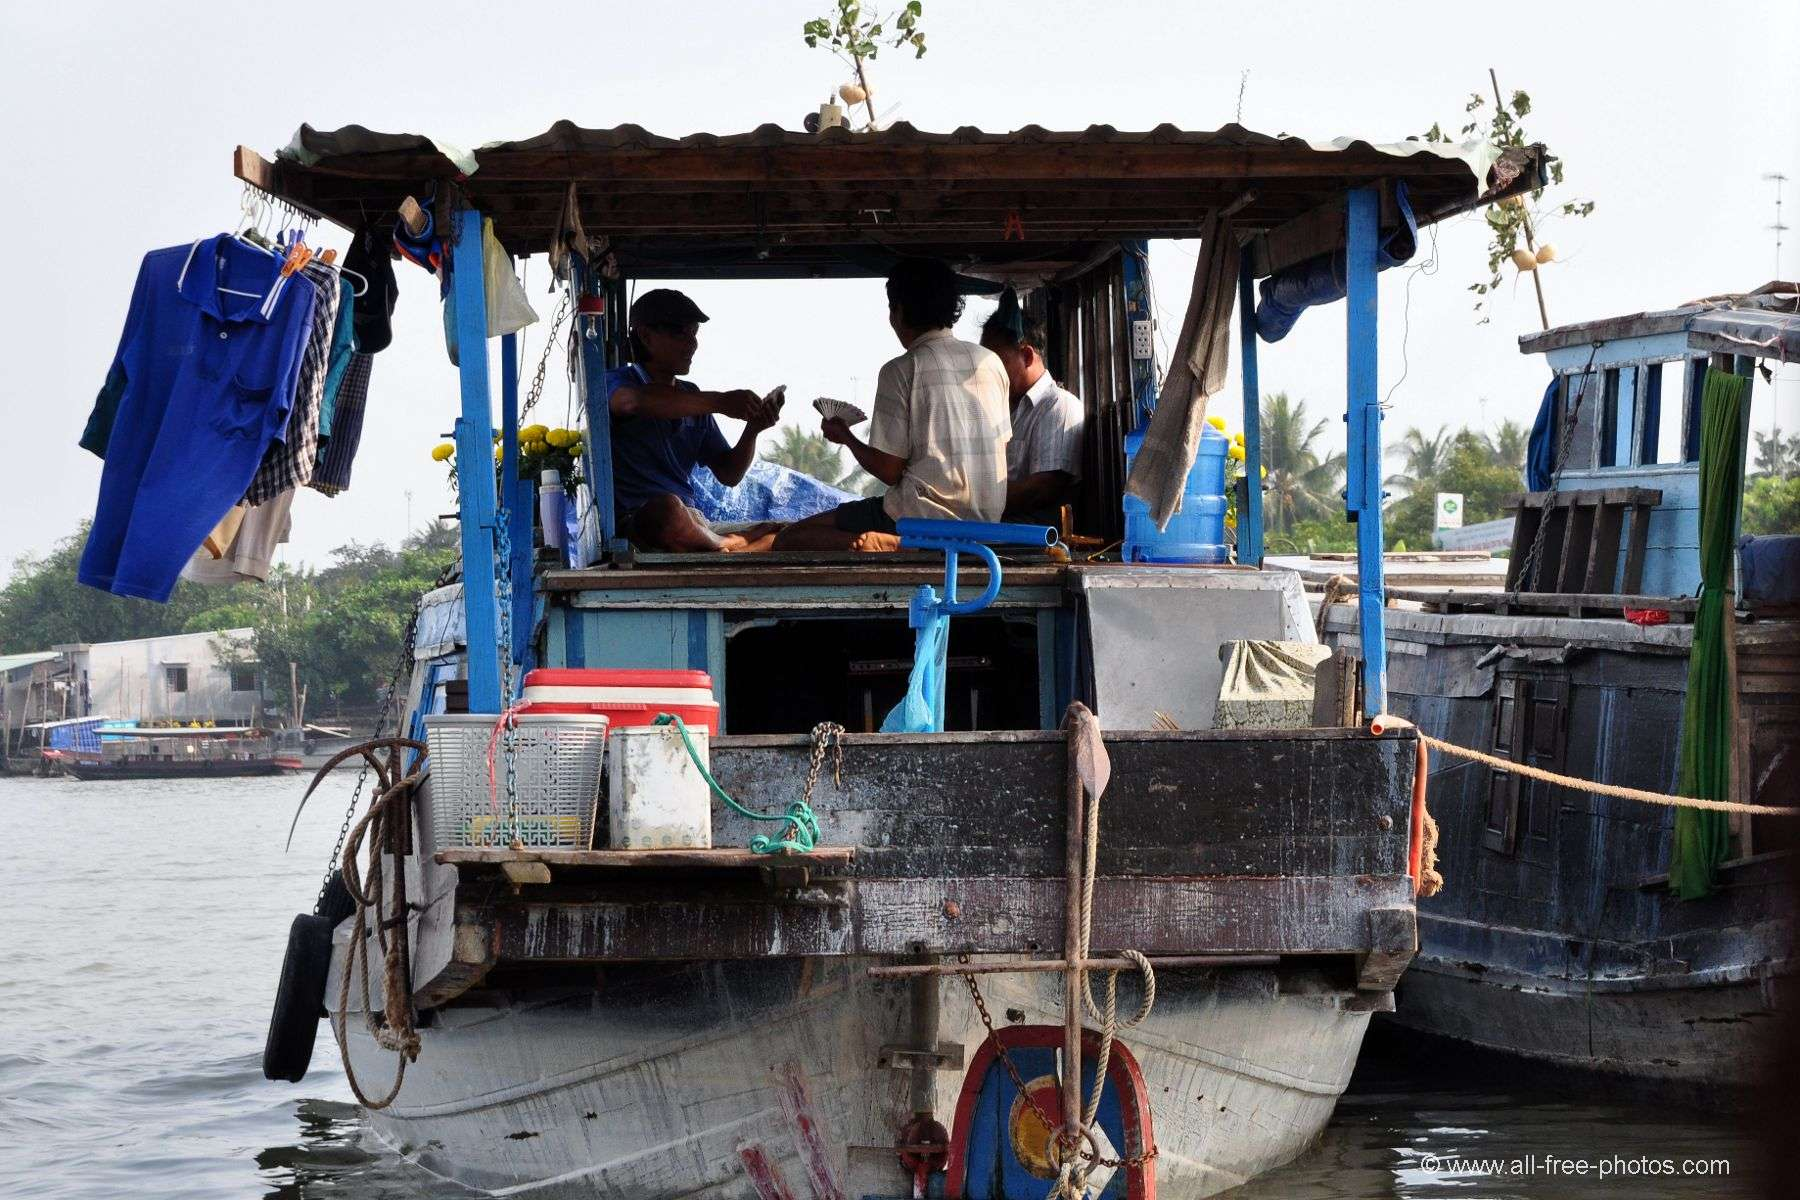 Daily life on the Mekong - Cai Be - Vietnam